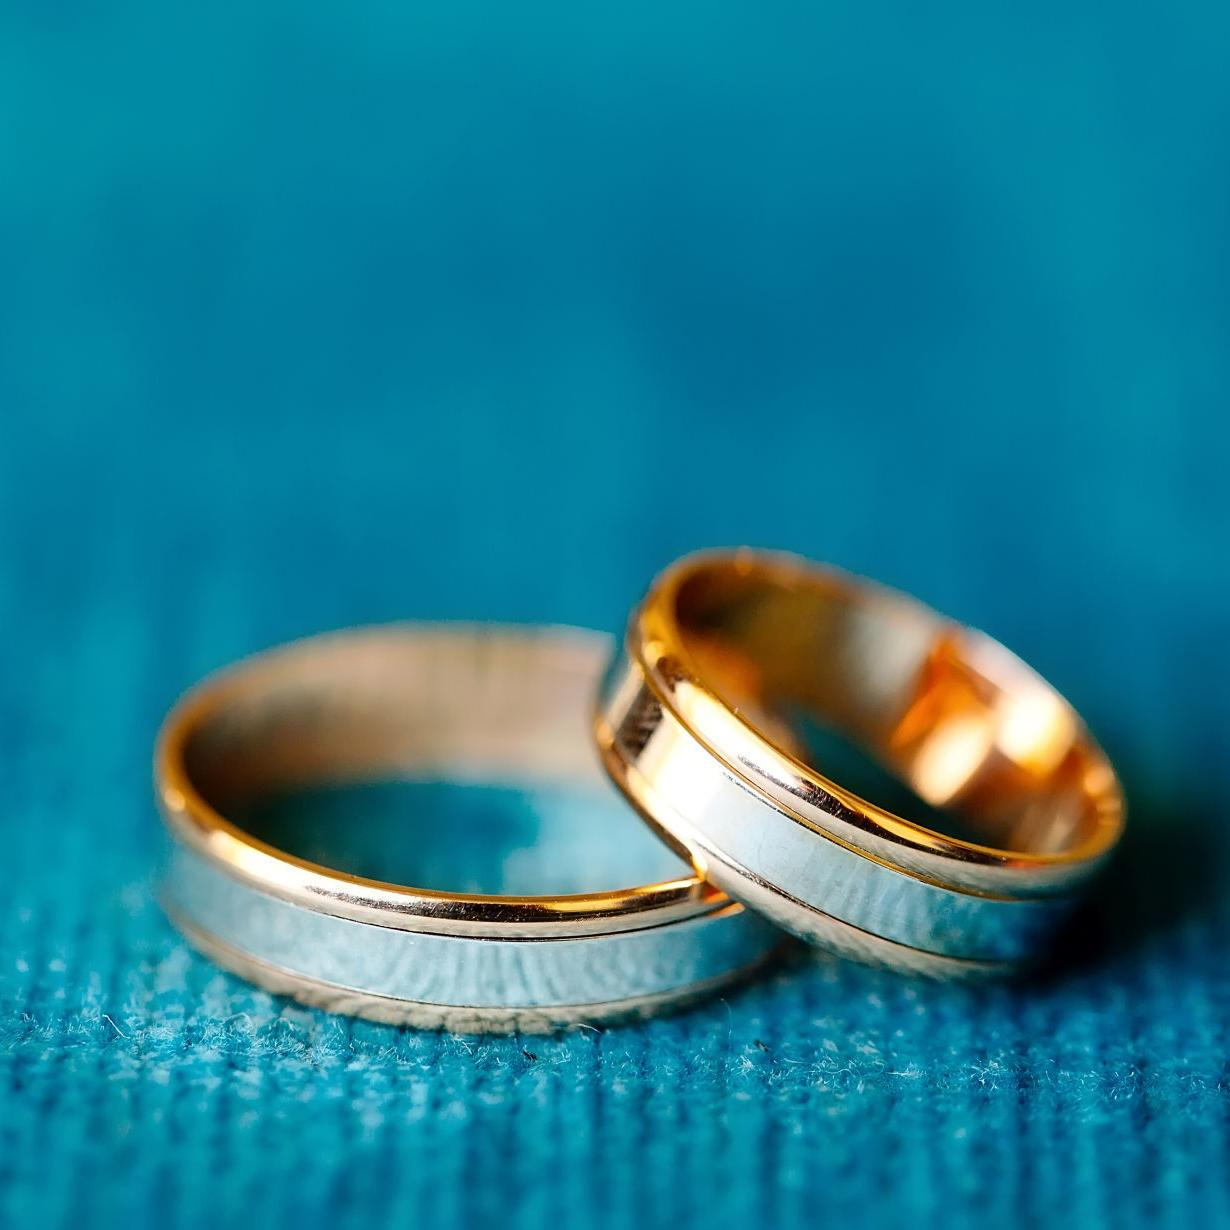 2018 divorce rate up, marriages down in Iowa | Political